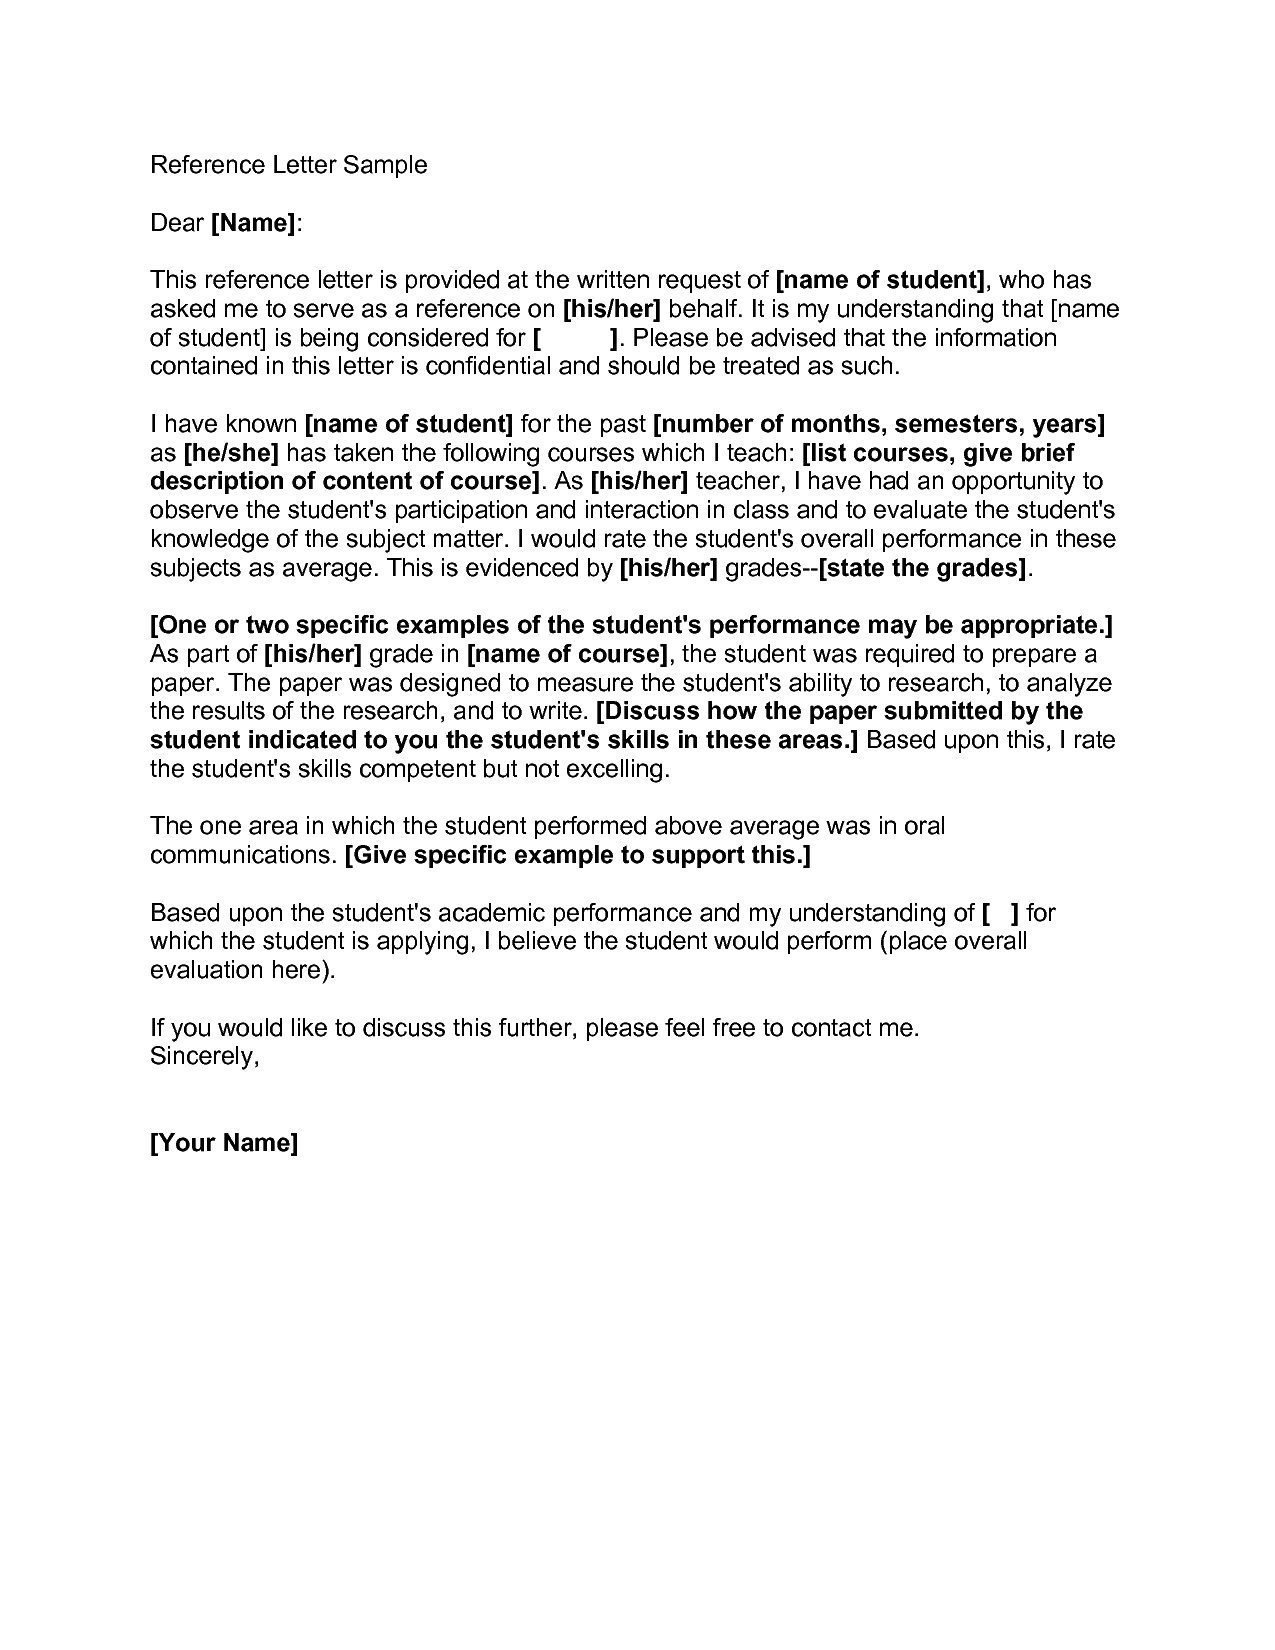 Reference Letter SamplesExamples of Reference Letters Request ...